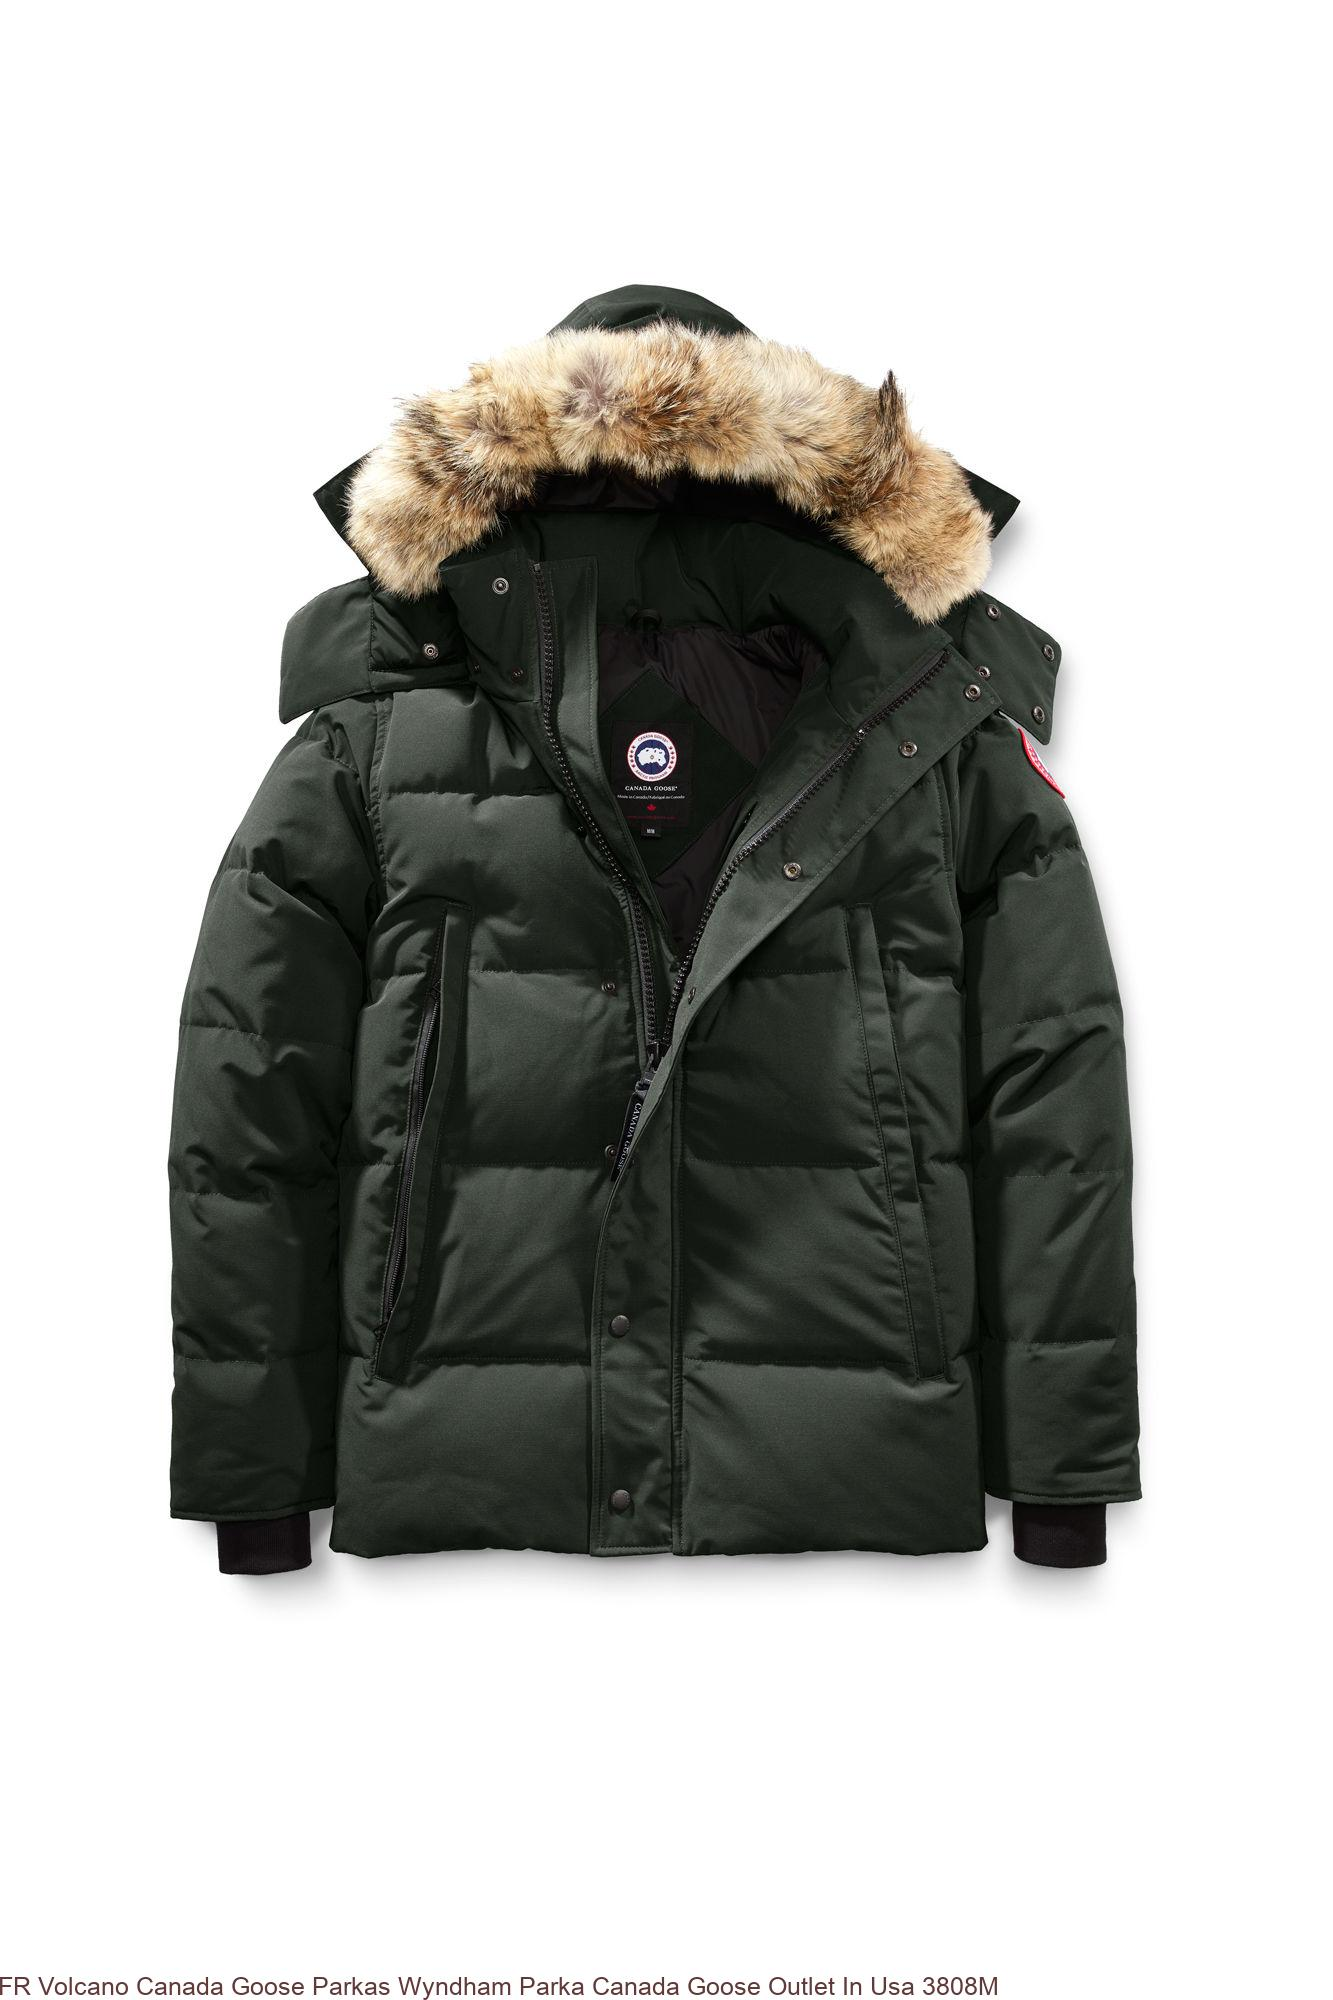 online store 50bb2 76bb2 FR Volcano Canada Goose Parkas Wyndham Parka Canada Goose Outlet In Usa  3808M